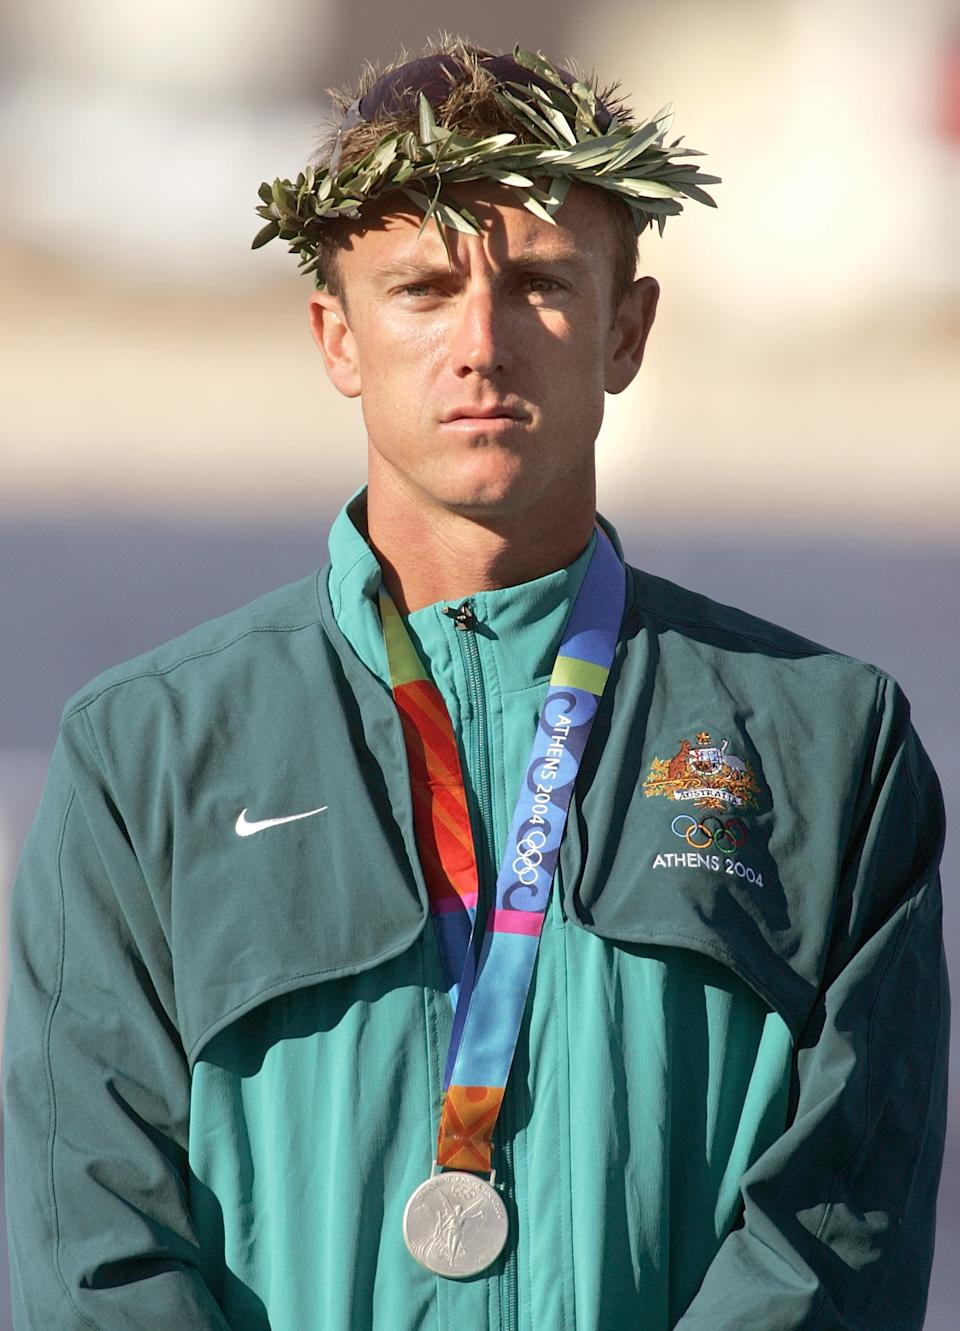 Nathan Baggaley won two silver medals at the 2004 Olympics. (AP Photo/David Guttenfelder)